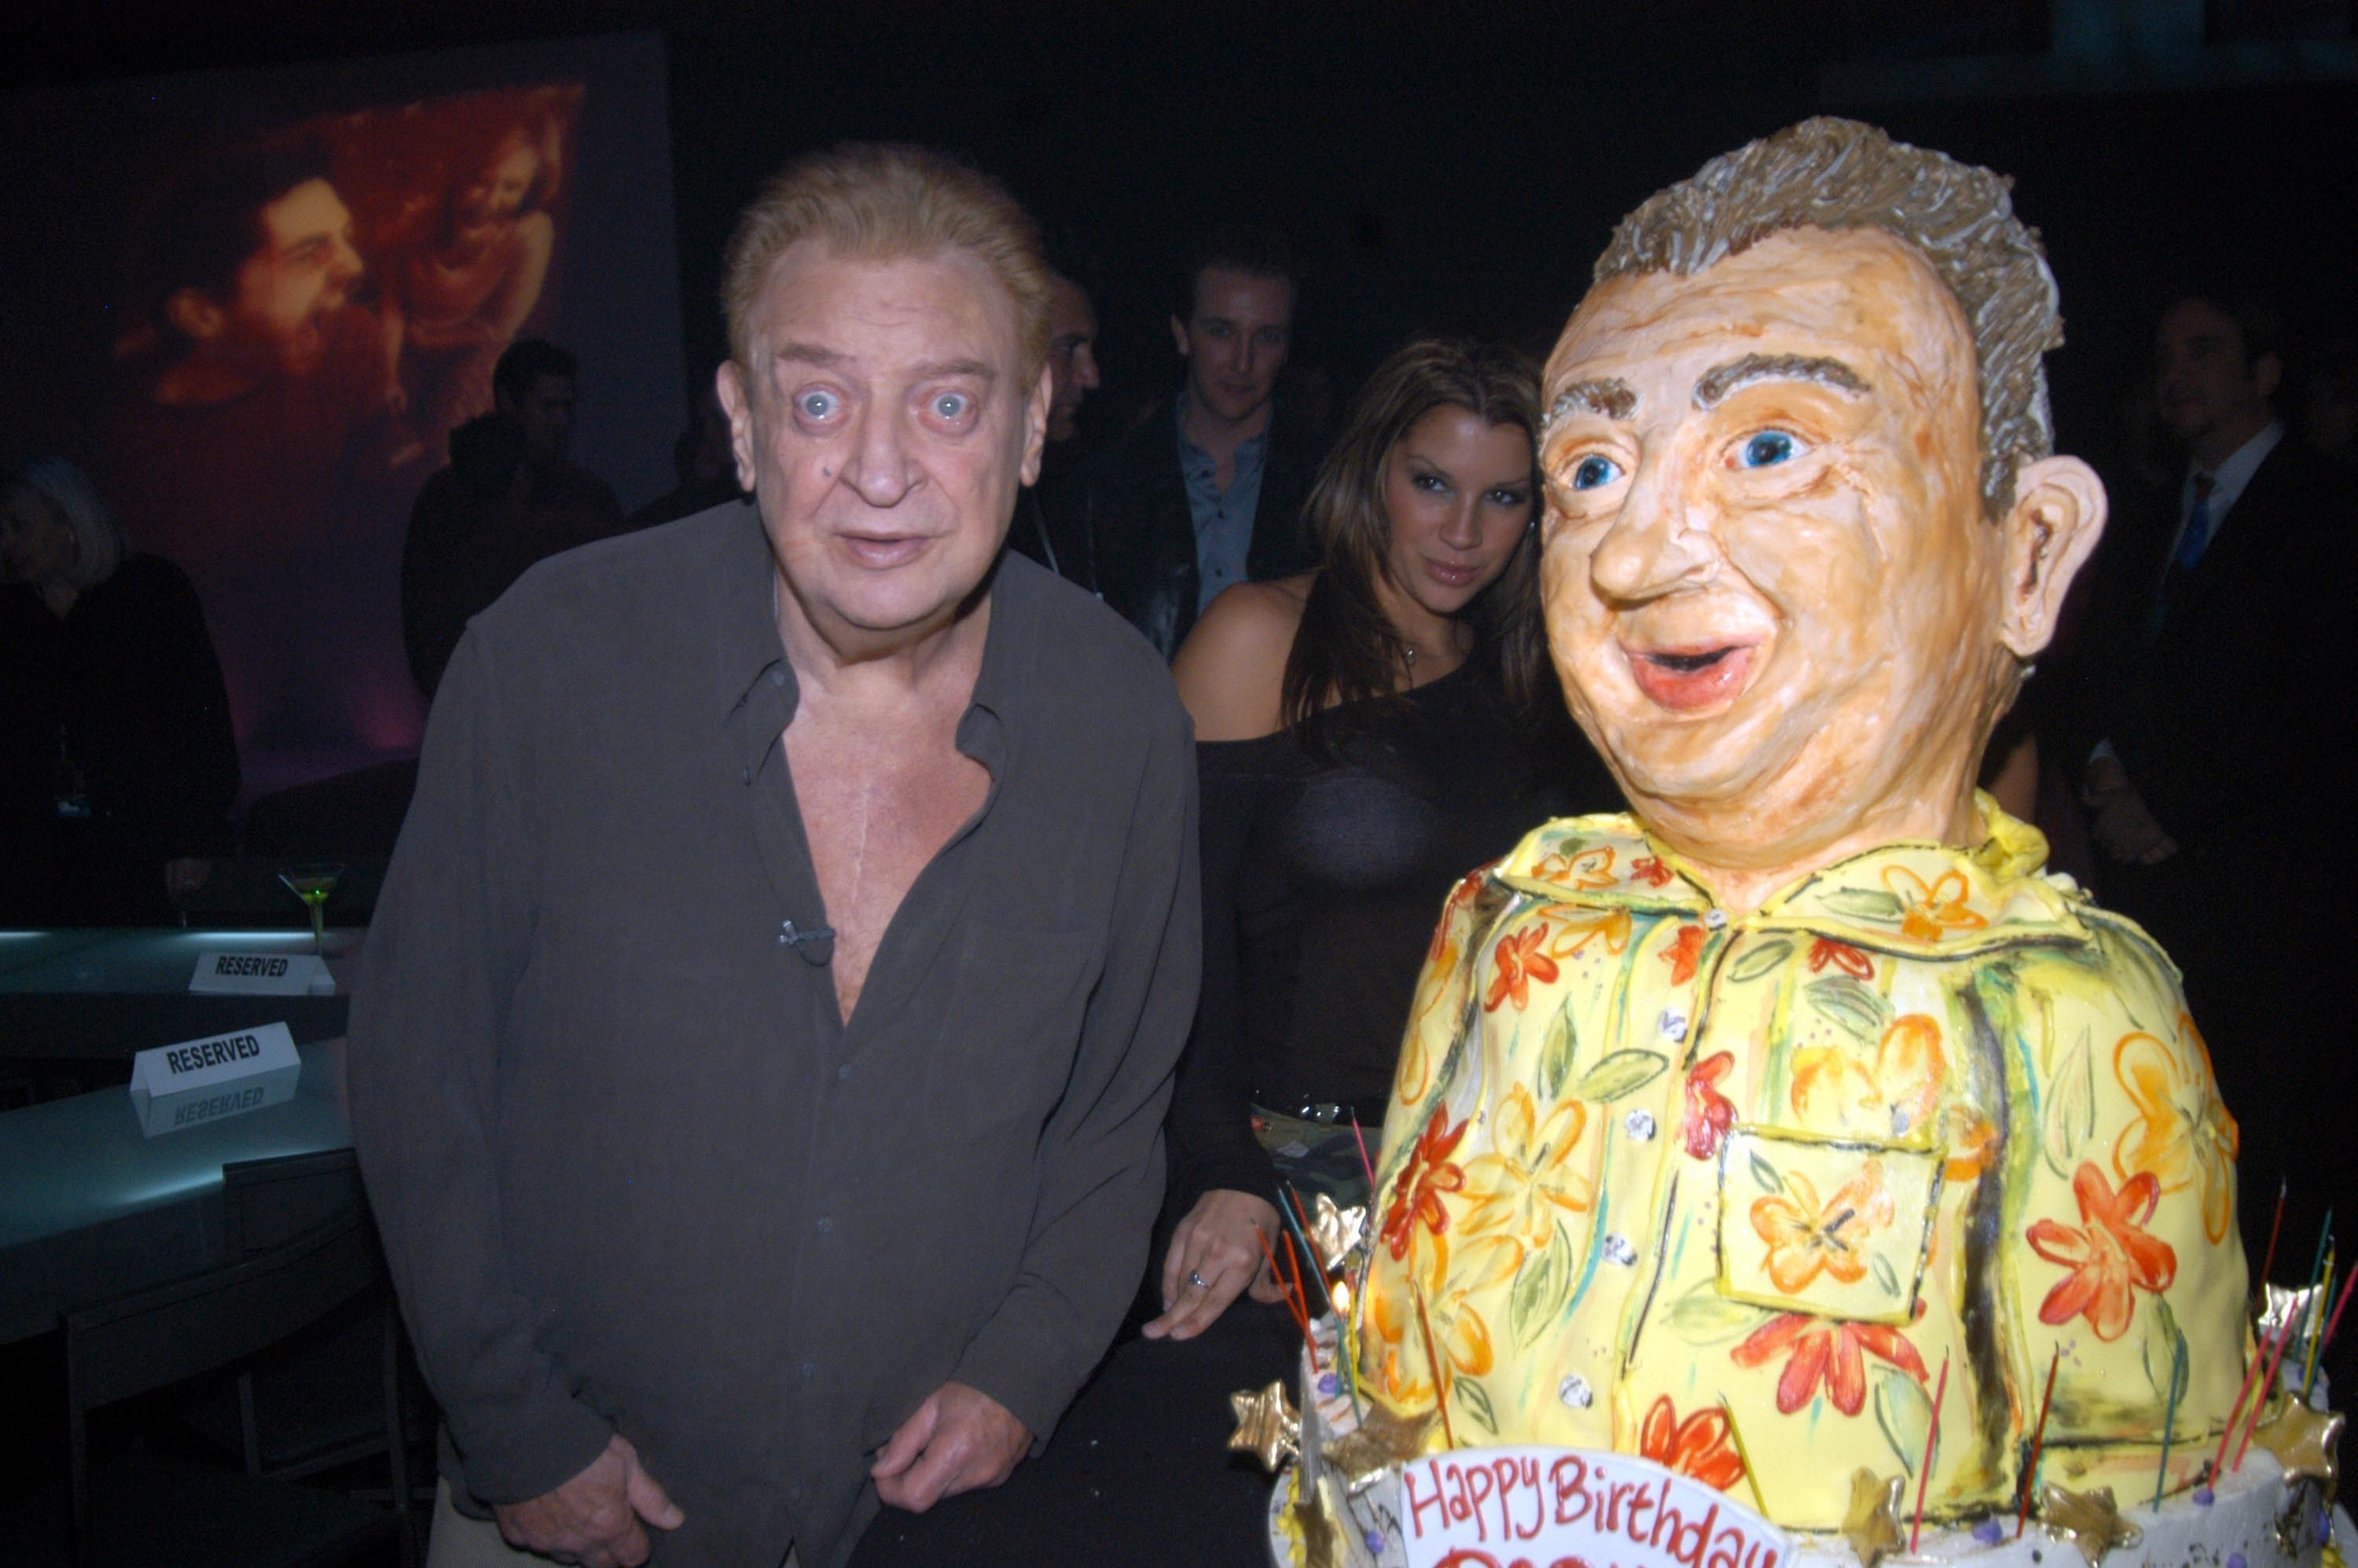 Rodney Dangerfield next to a cake with a model of himself in a Hawaiian shirt